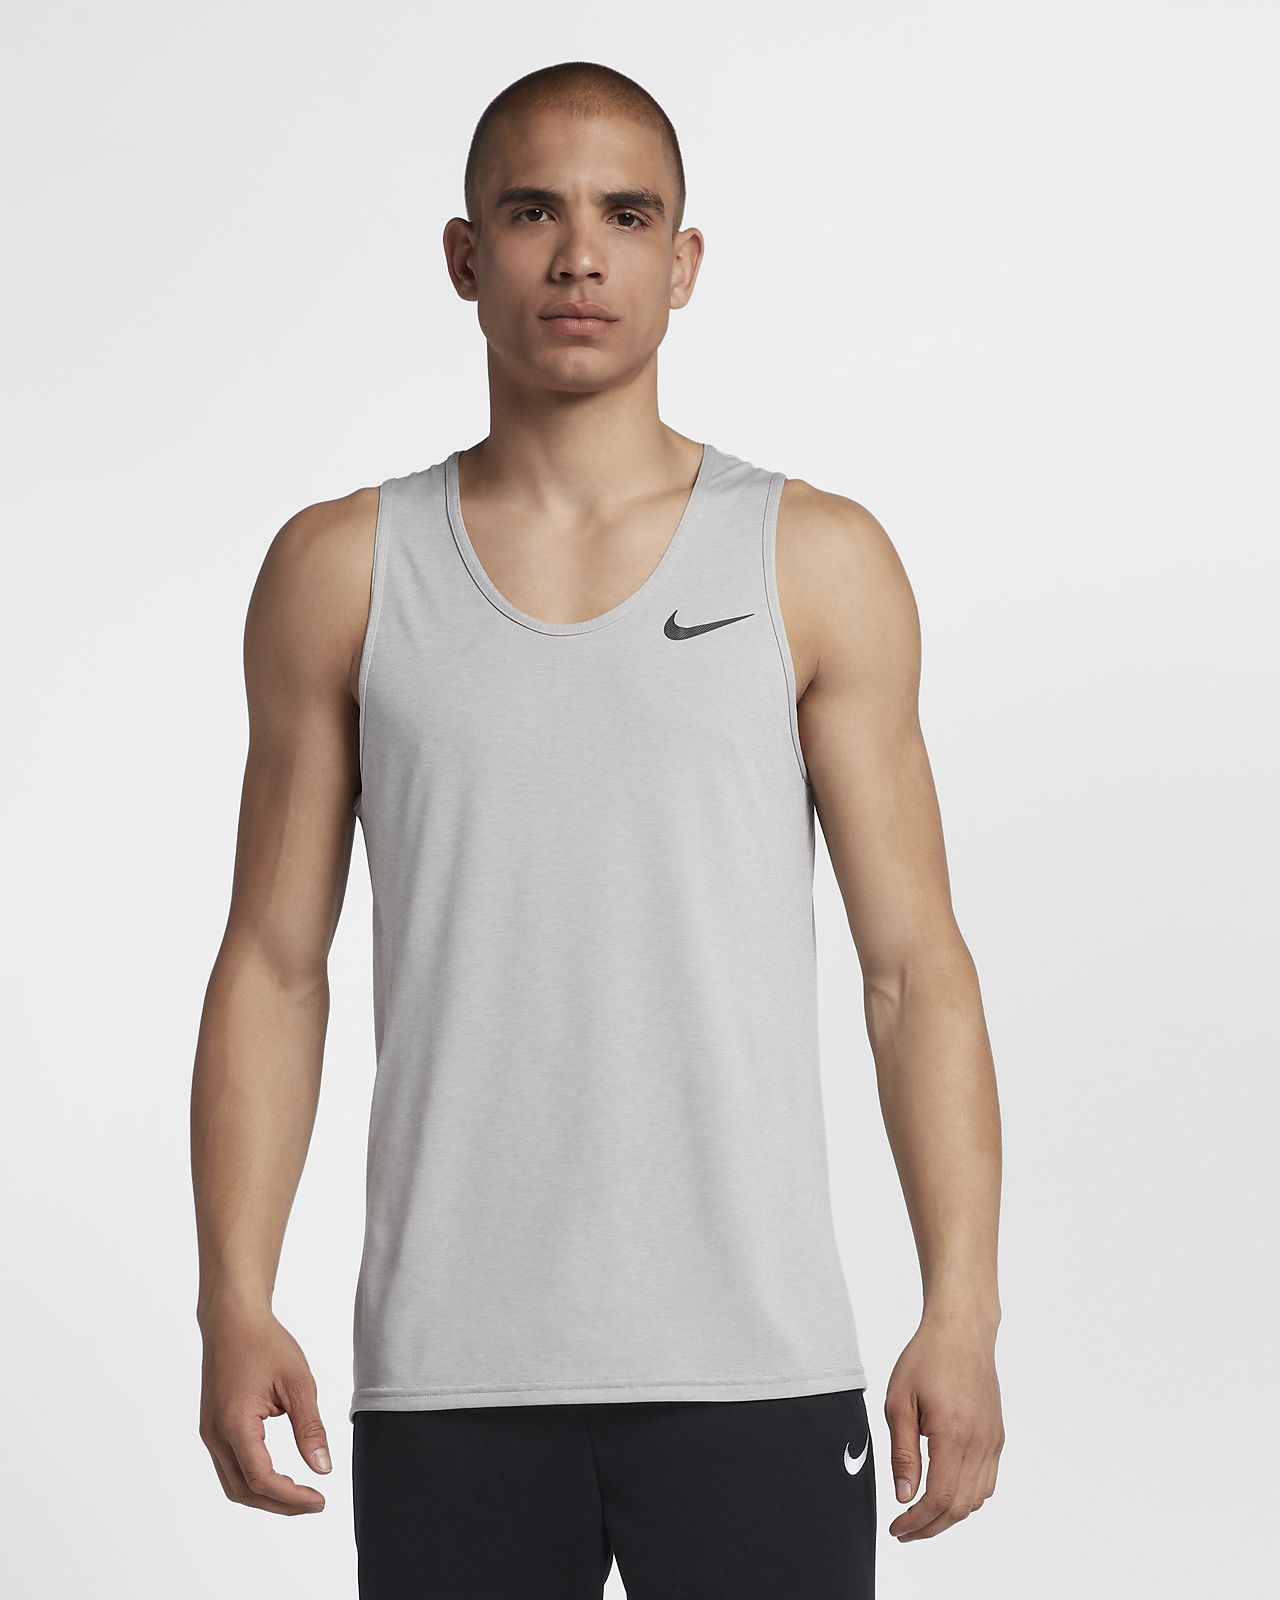 Nike Breathe Men's Training Tank